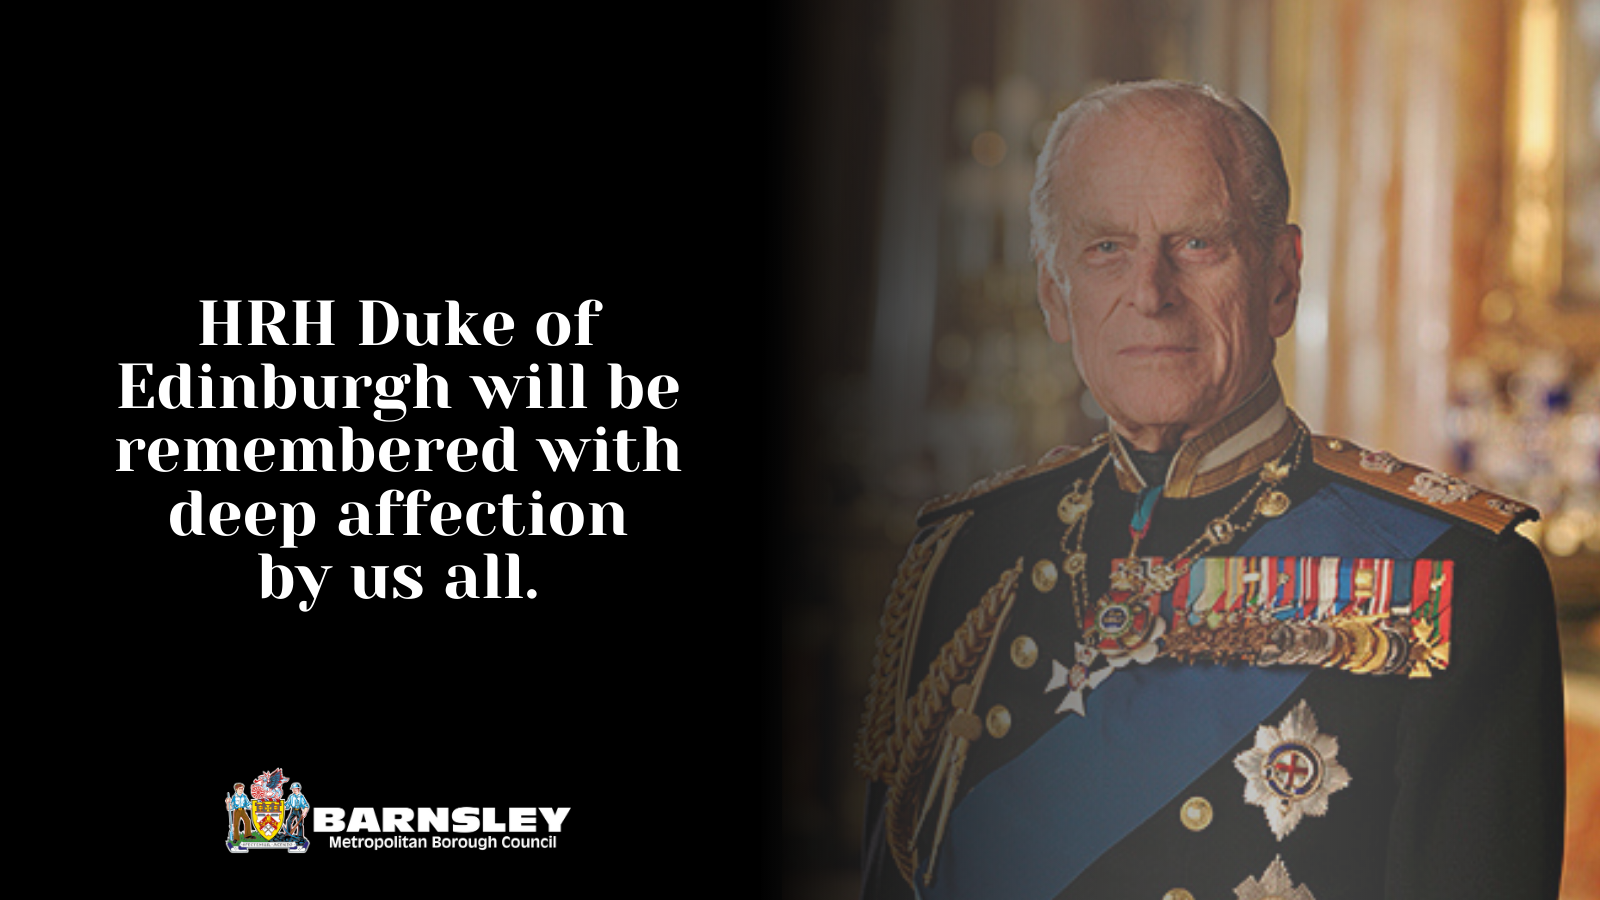 HRH Duke of Edinburgh will be remembered with deep affection by us all